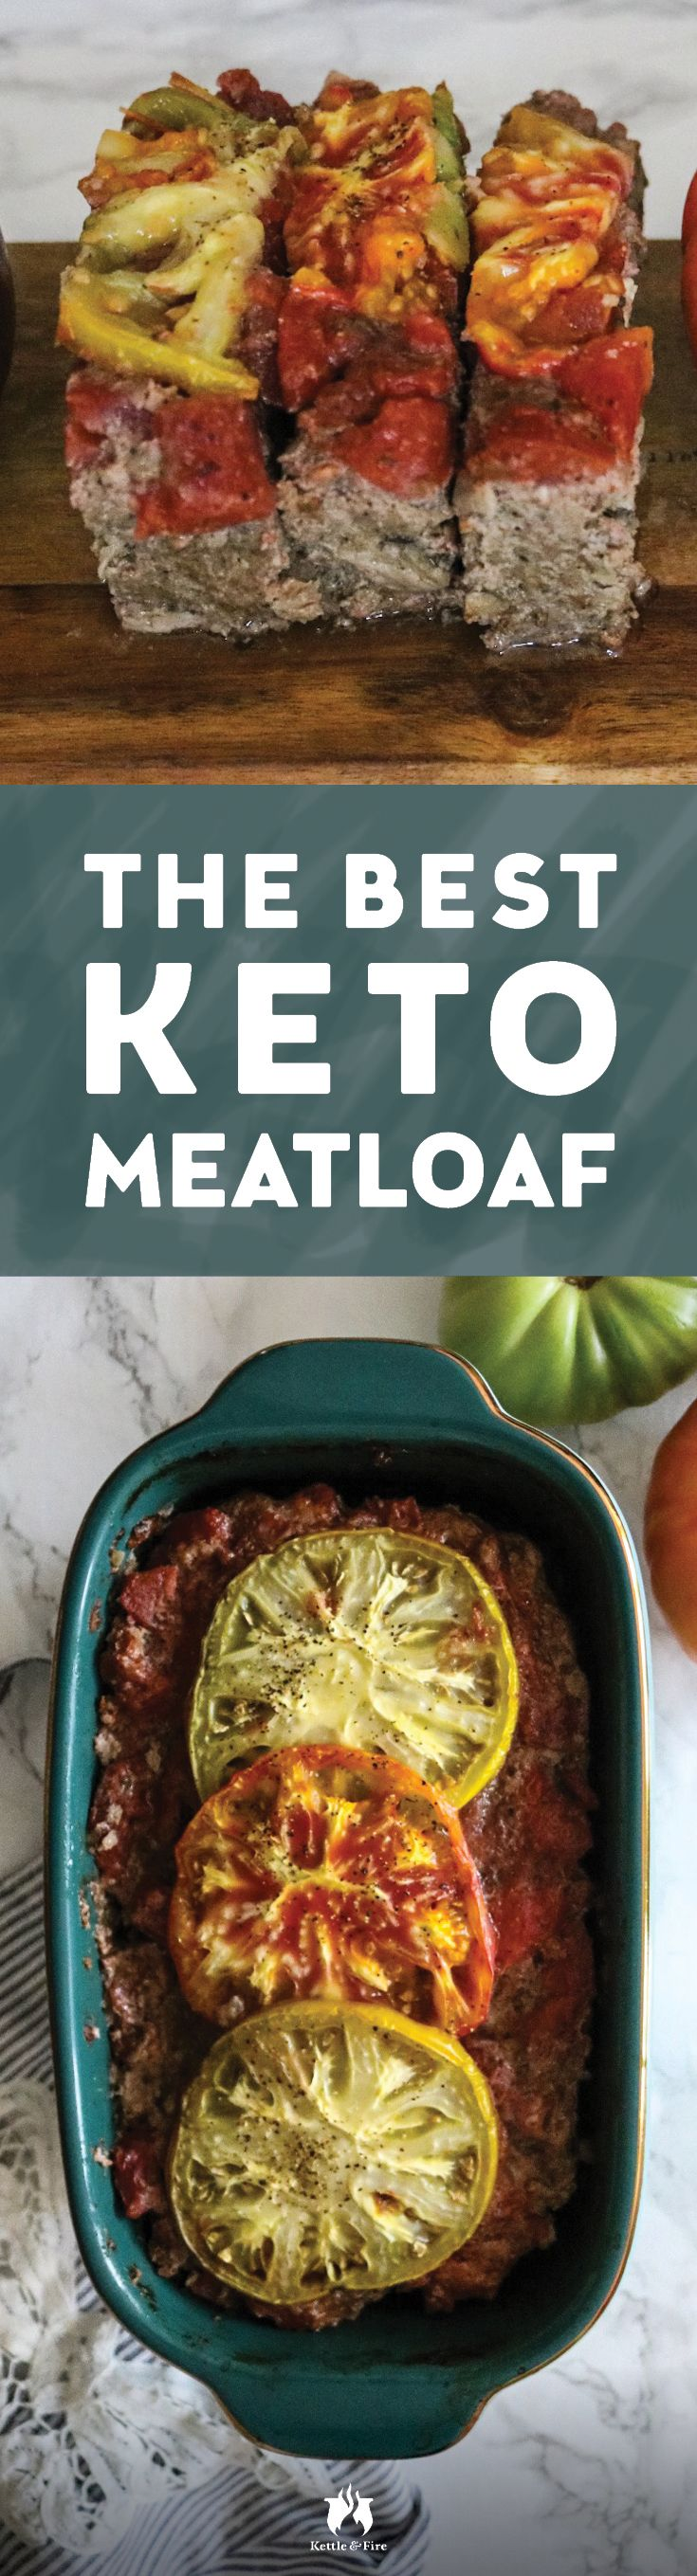 A juicy, flavor-packed keto meatloaf topped with a tangy and sweet tomato sauce that is gluten free and low carb to meet your keto needs.